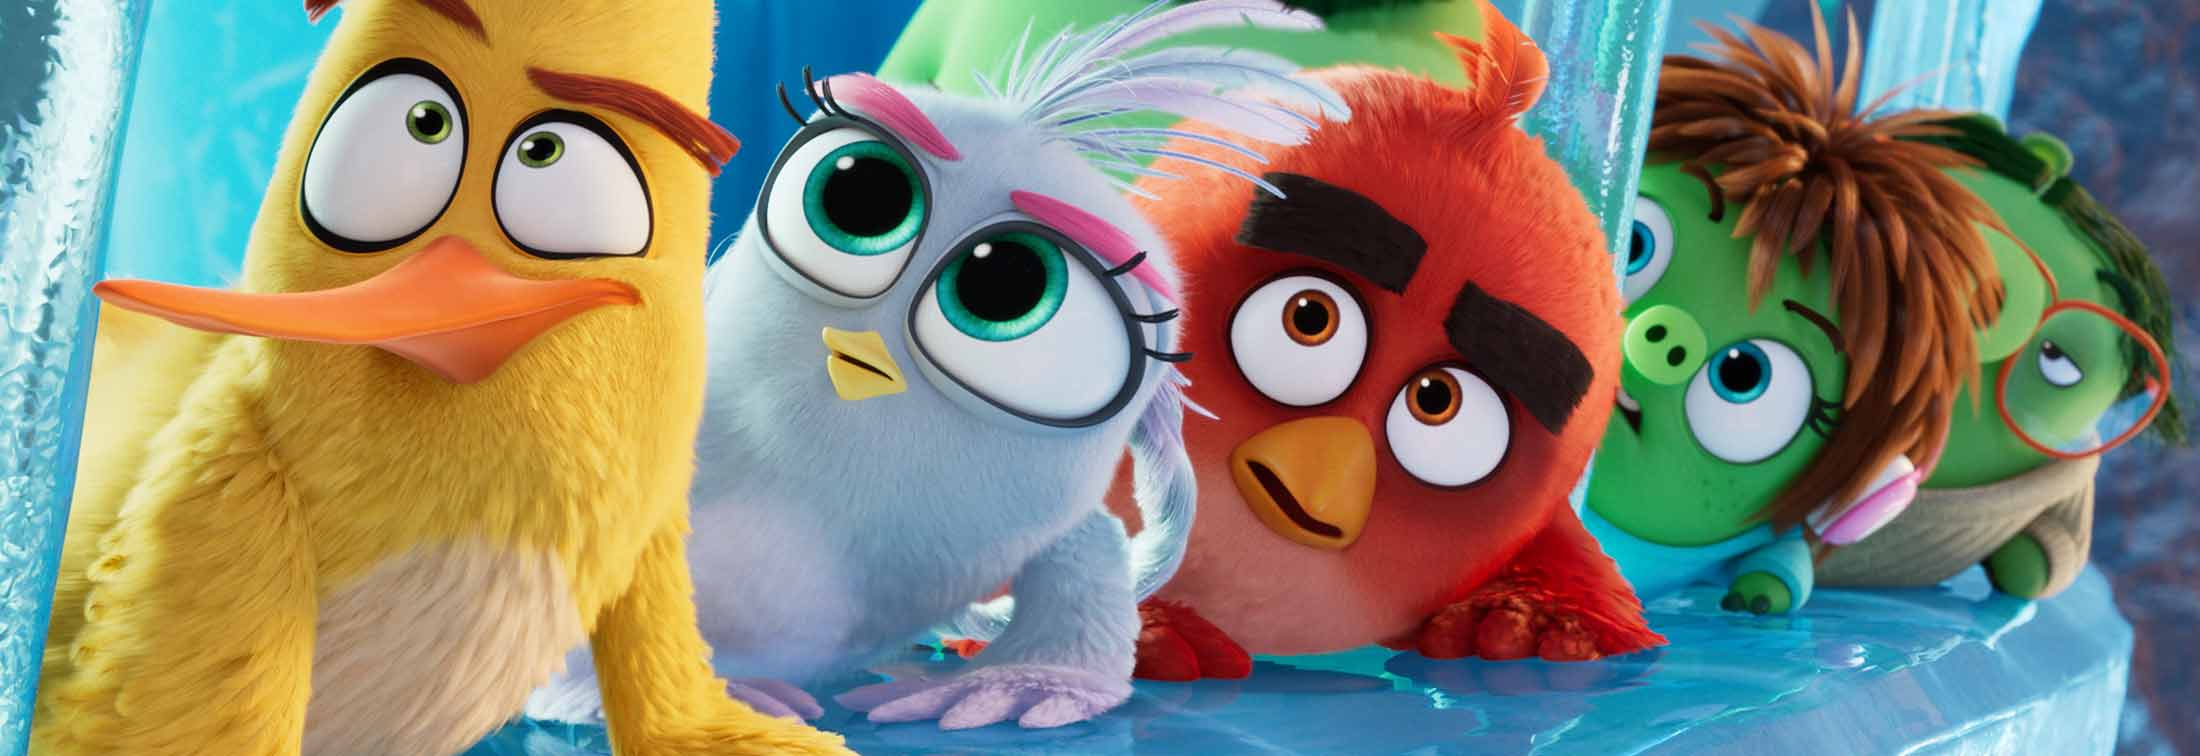 review, The Angry Birds Movie 2, The, Angry, Birds, Movie, 2, film, movie, latest movies, new movie, movie ratings, current movie reviews, latest films, recent movies, current movies, movie critics, new movie reviews, latest movie reviews, latest movies out, the latest movies, review film, latest cinema releases, Australian reviews, cinema, cinema reviews, Jason Sudeikis, Josh Gad, Danny McBride, Leslie Jones, Rachel Bloom, Sterling K. Brown, Bill Hader, Peter Dinklage, Awkwafina, Zach Woods, Thurop Van Orman